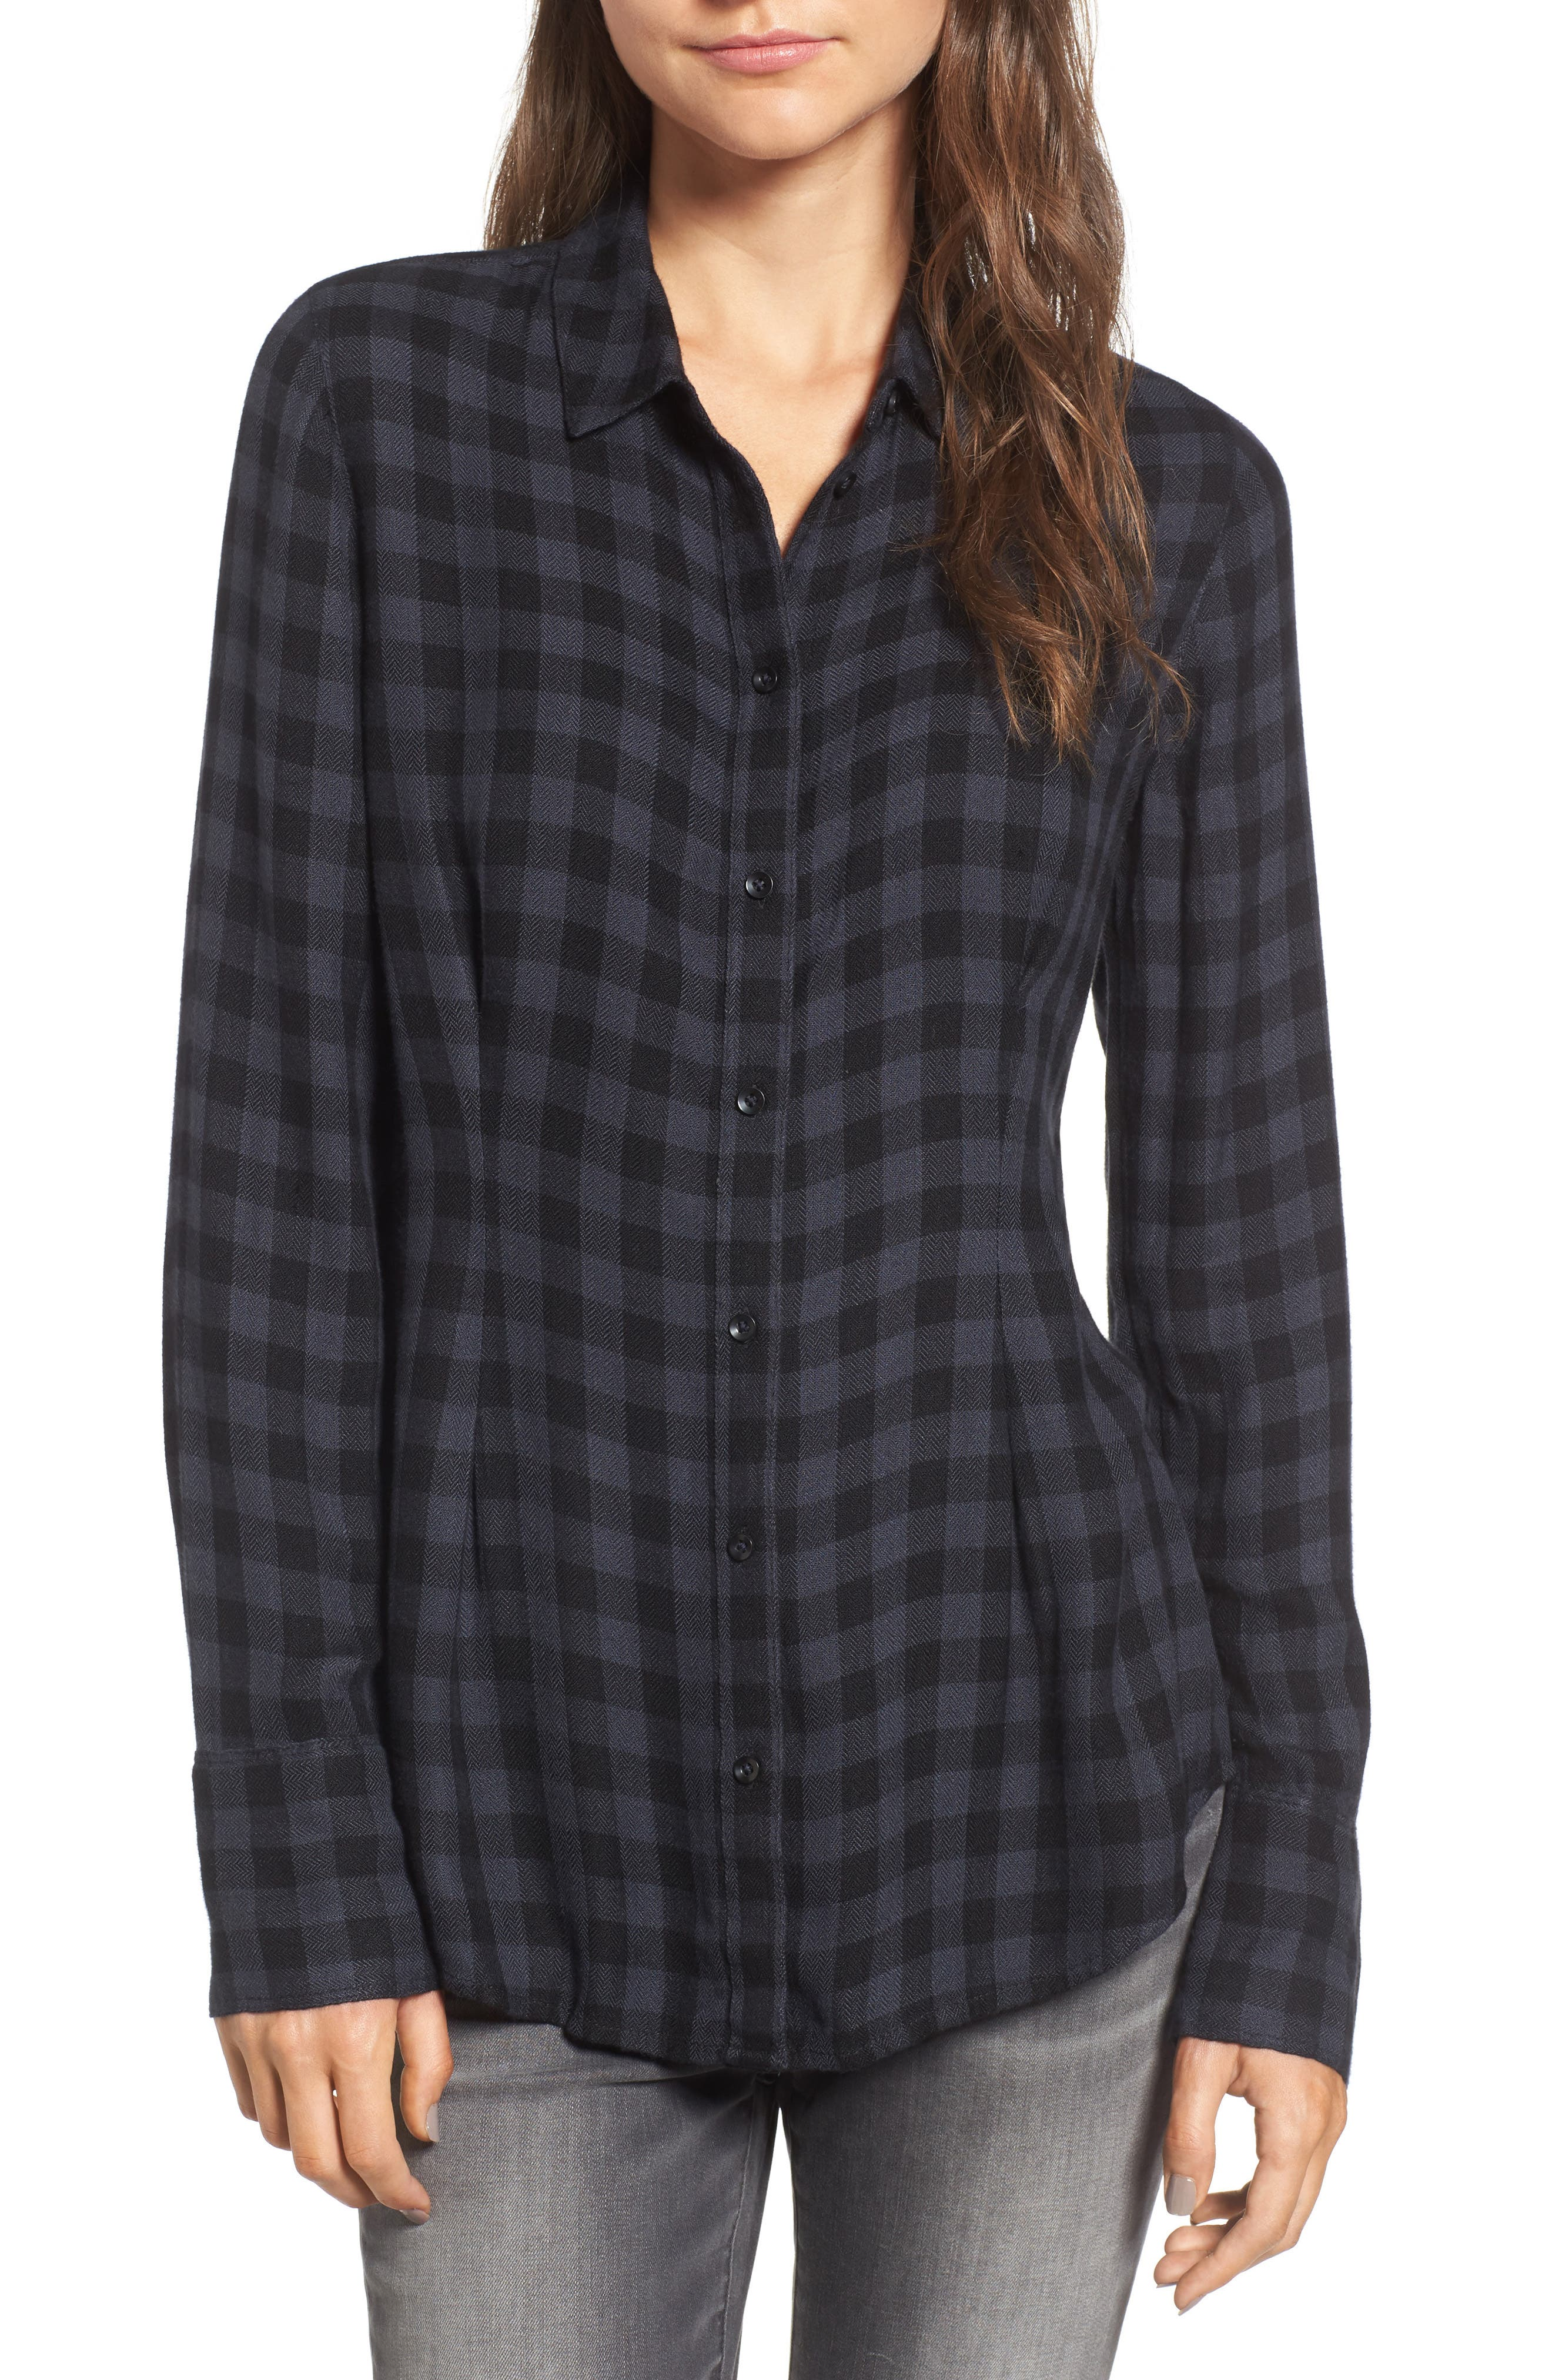 Main Image - Treasure & Bond Plaid Corset Shirt